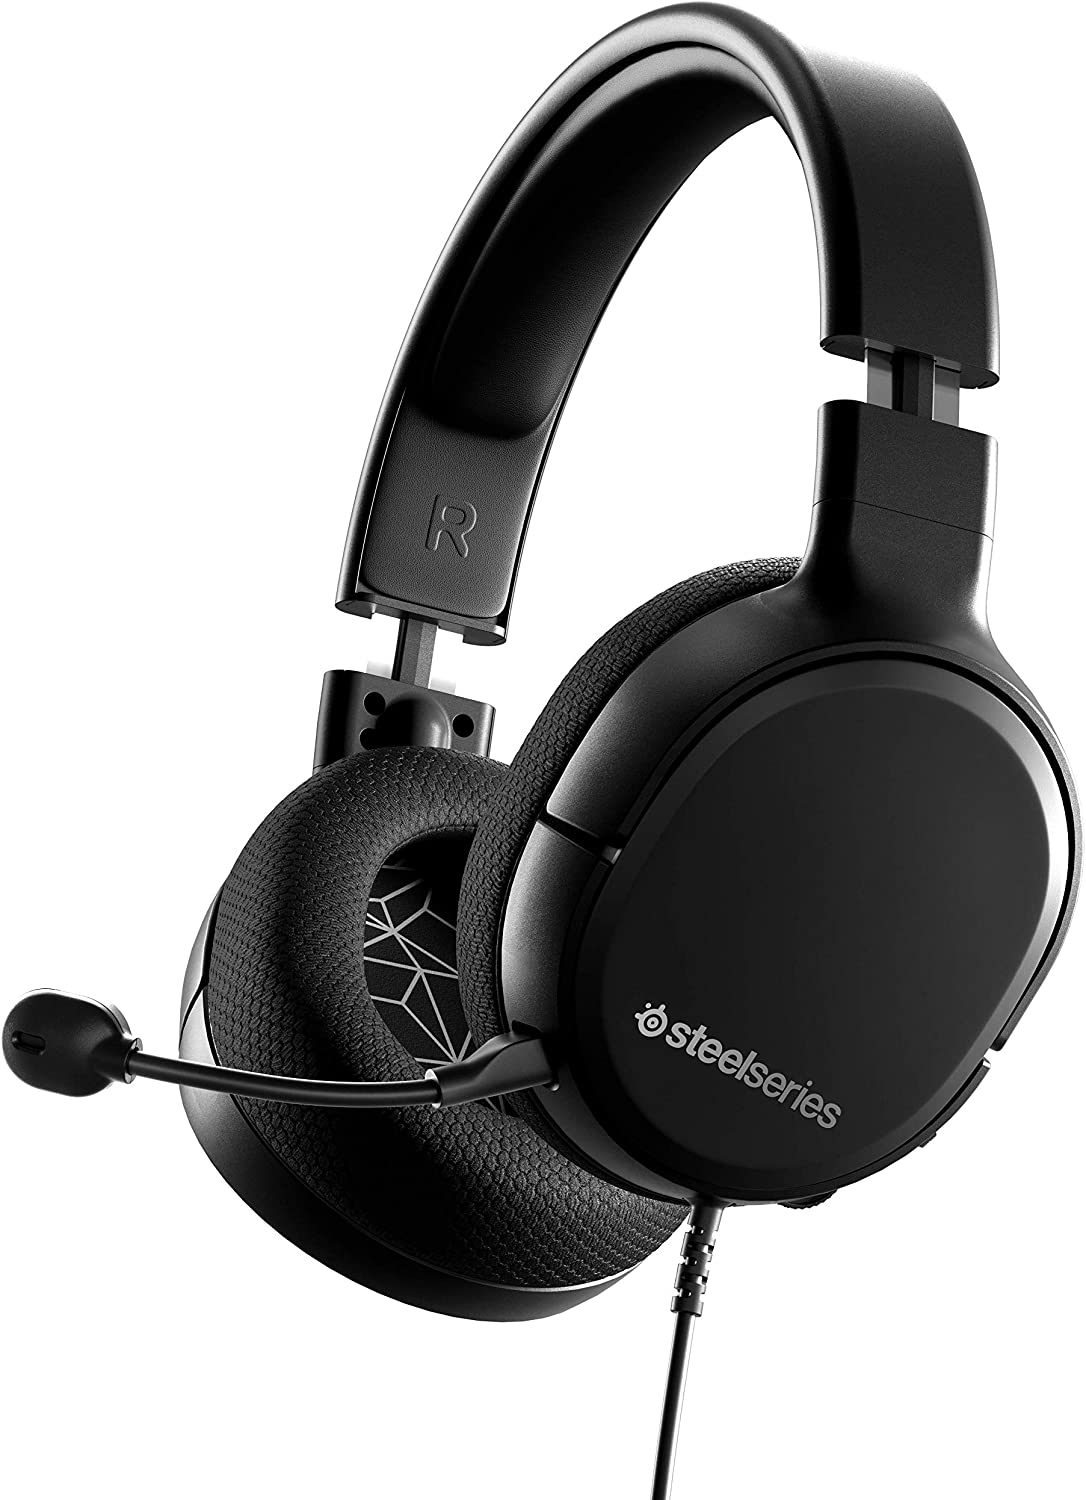 Amazon Com Steelseries Arctis 1 Wired Gaming Headset Detachable Clearcast Microphone Lightweight Steel Reinforced Headband For Pc Ps4 Xbox Nintendo Switch And Lite Mobile Computers Accessories